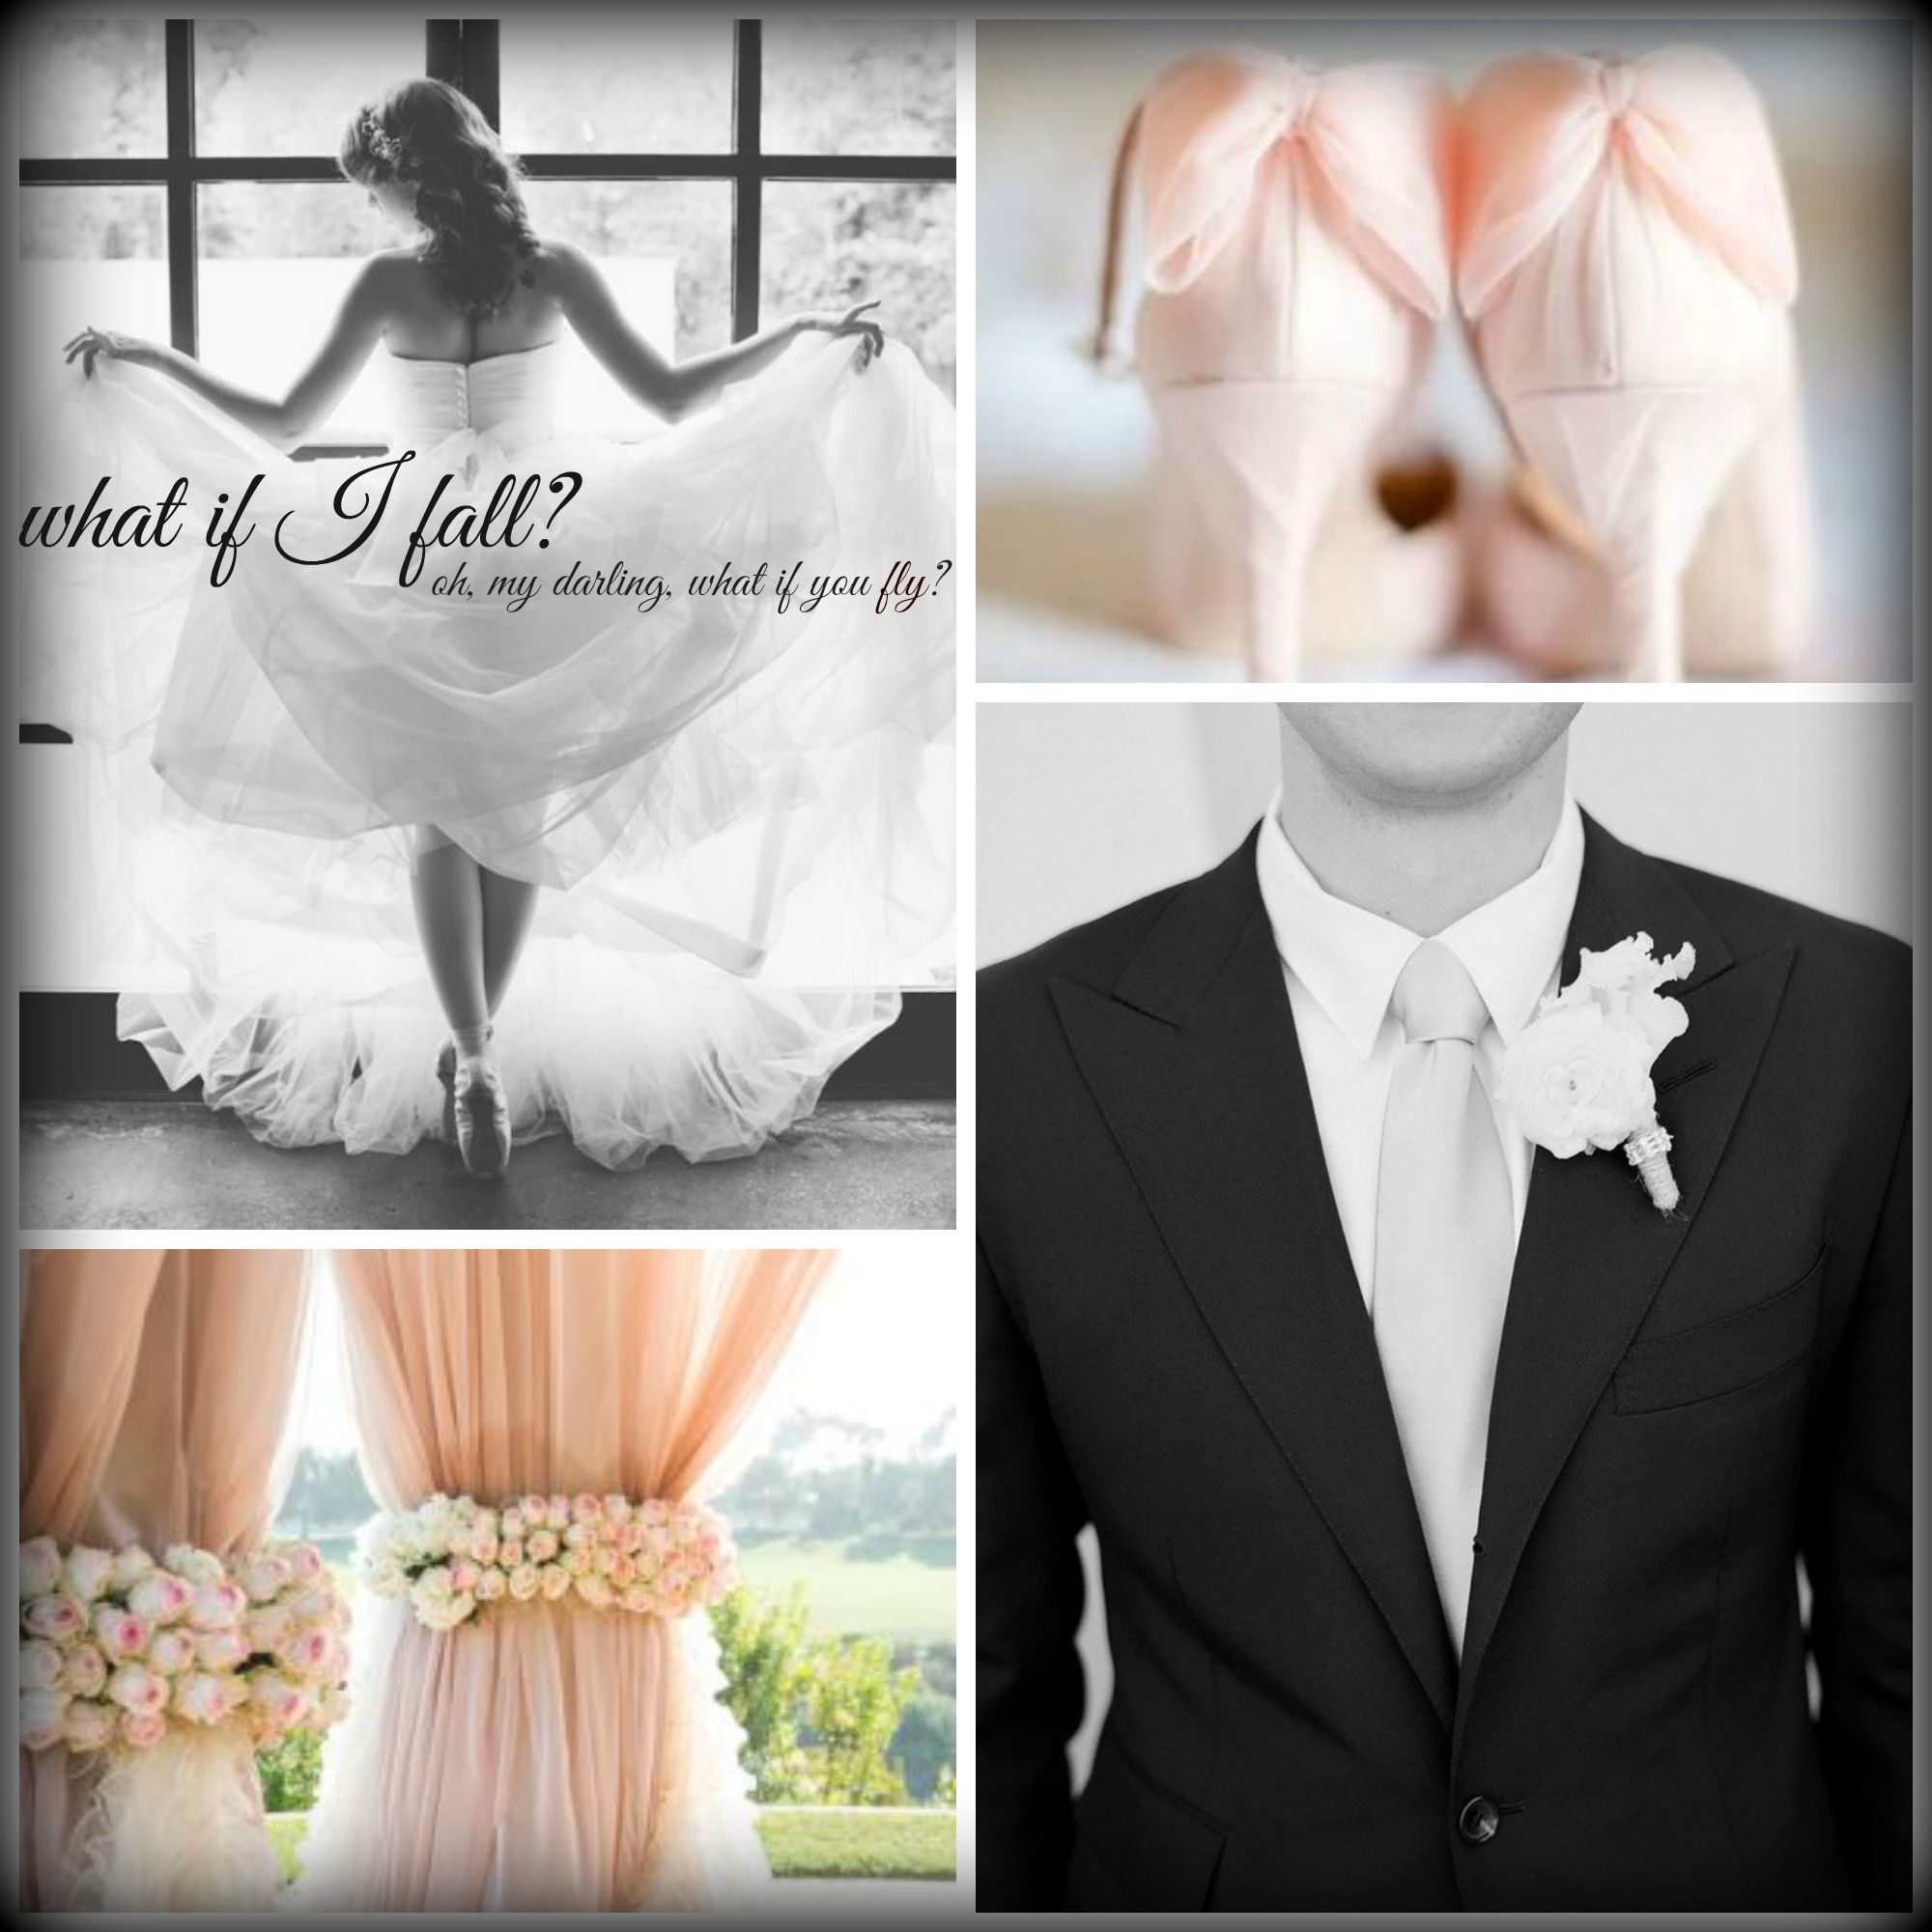 Black Swan Wedding Inspiration blends romance and drama. By AAWEP ...